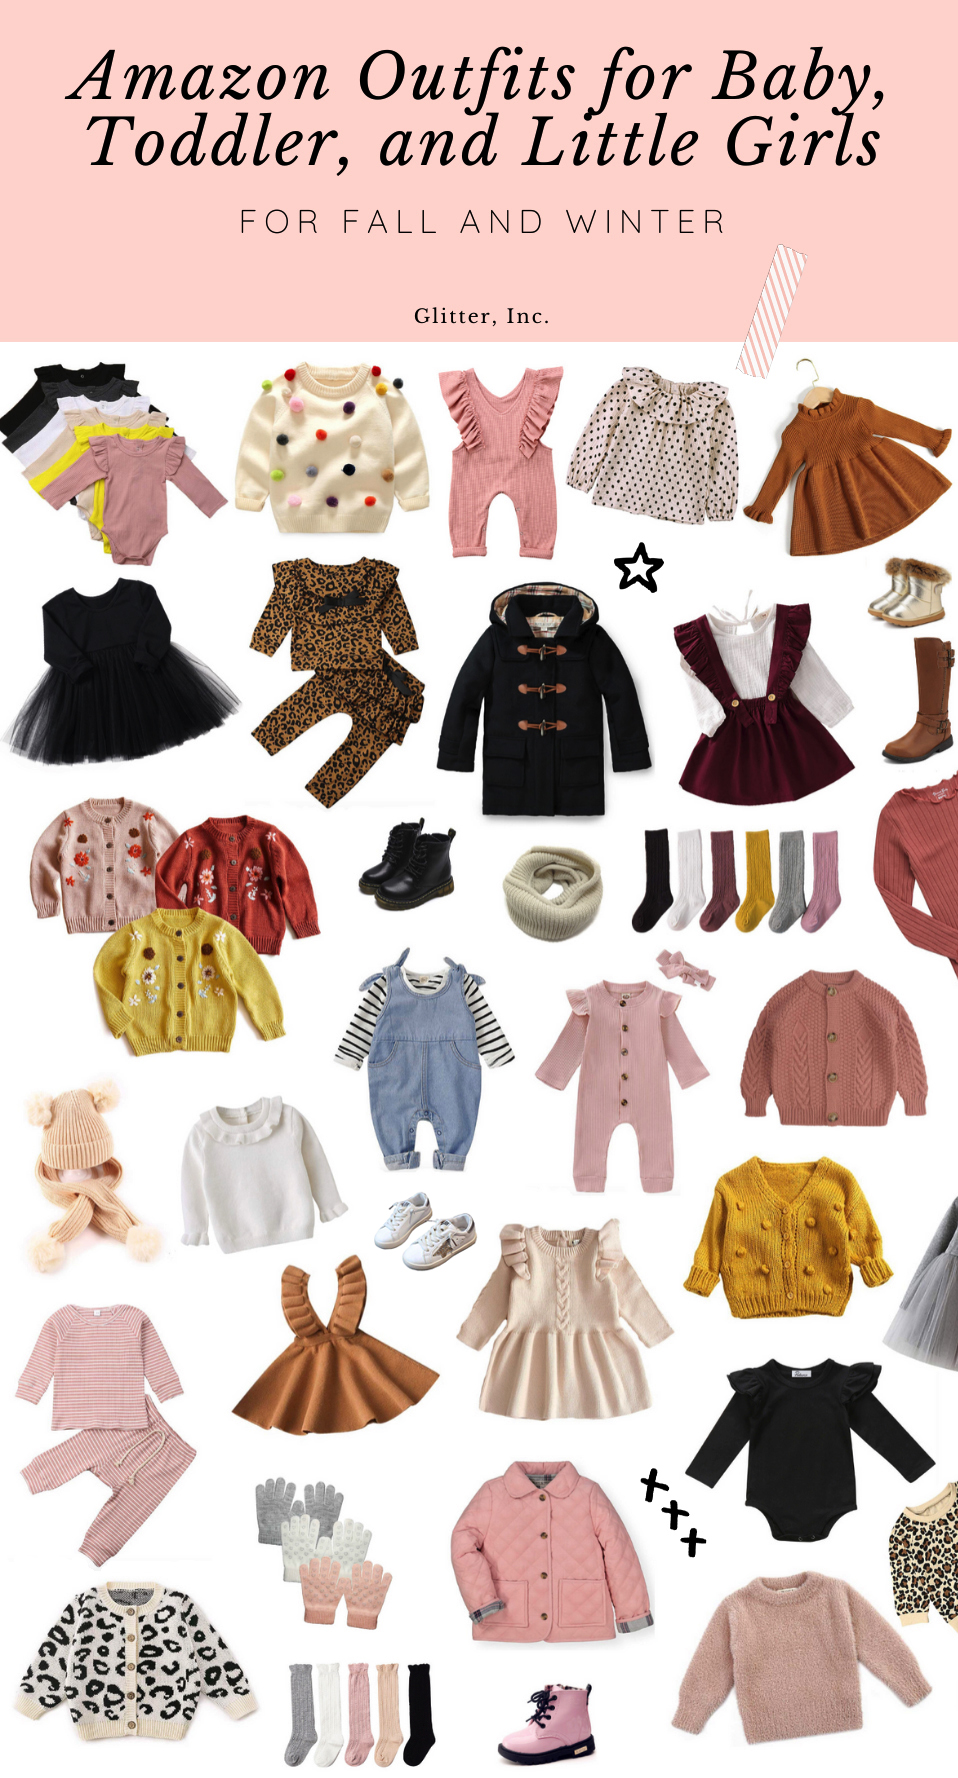 Amazon Outfits for Baby Girls, Toddler, and Little Girls - Fall and Winter Kids Fashion - GLITTERINC.COM